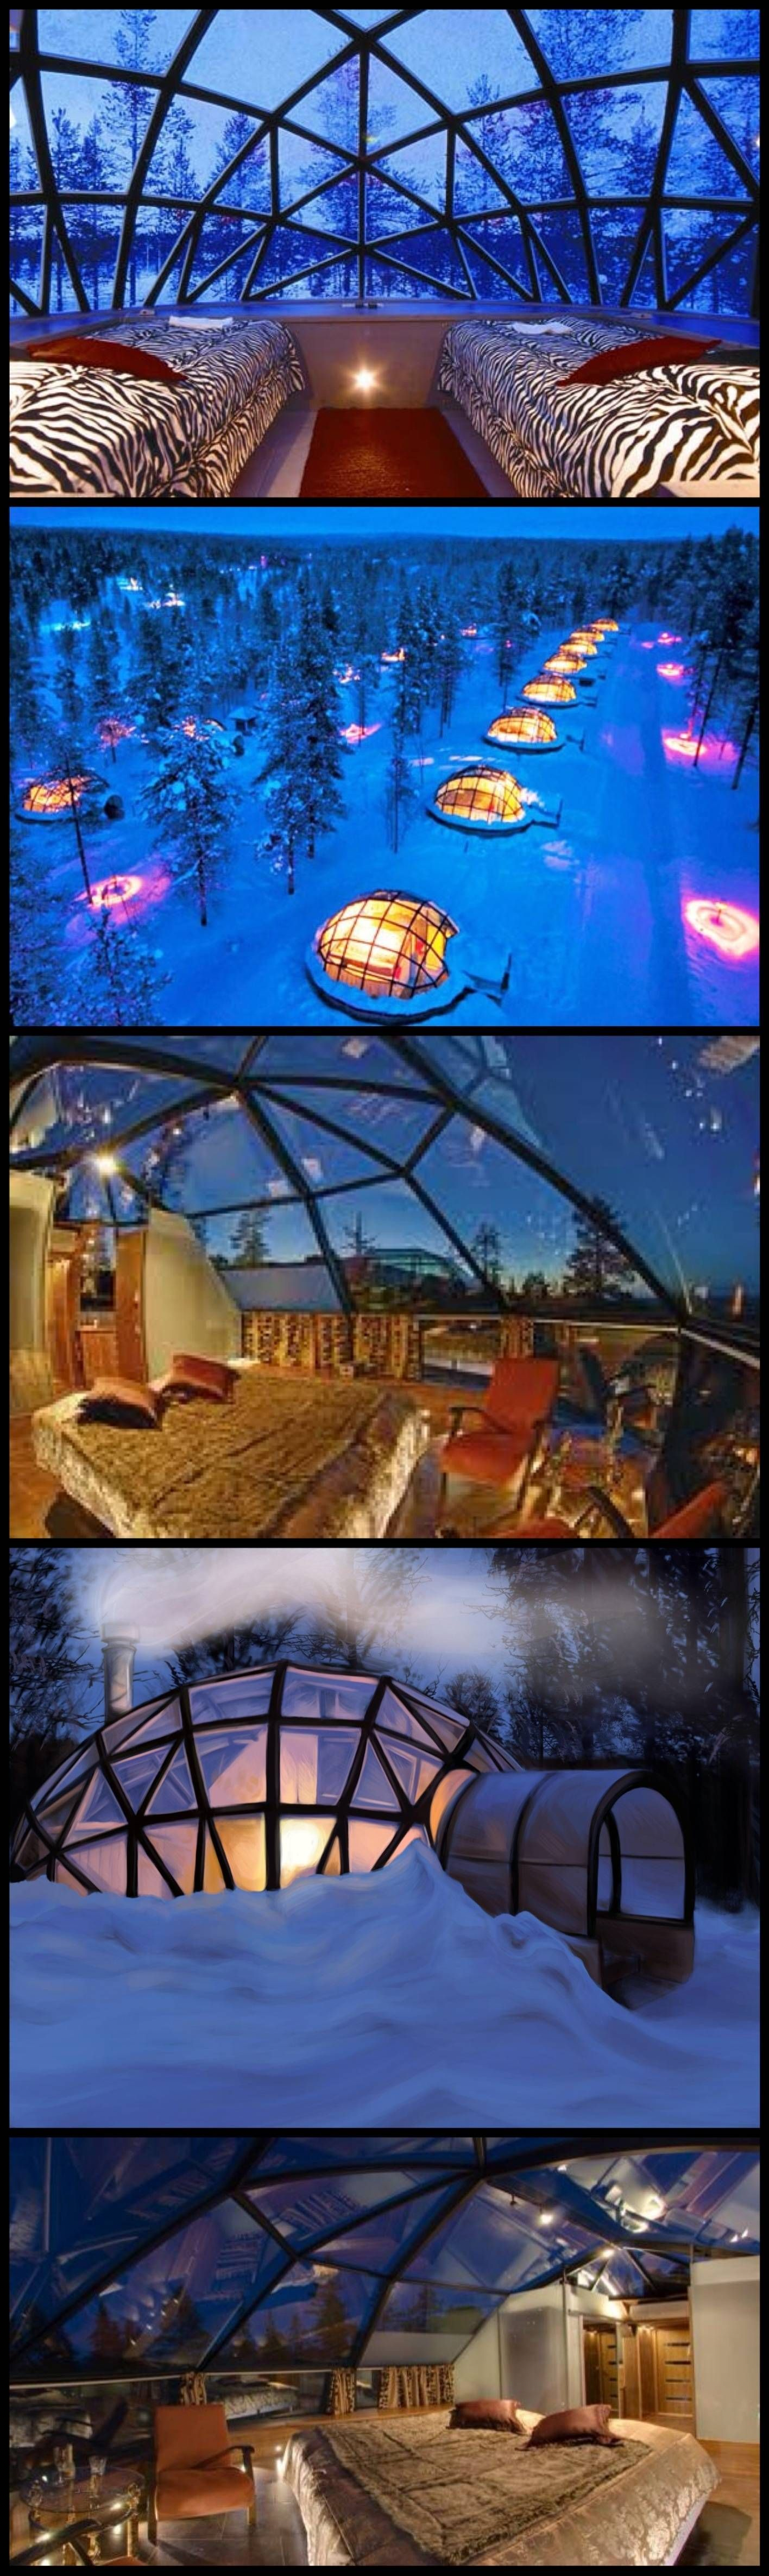 Northern Lights Iceland Glass Igloo Hotel